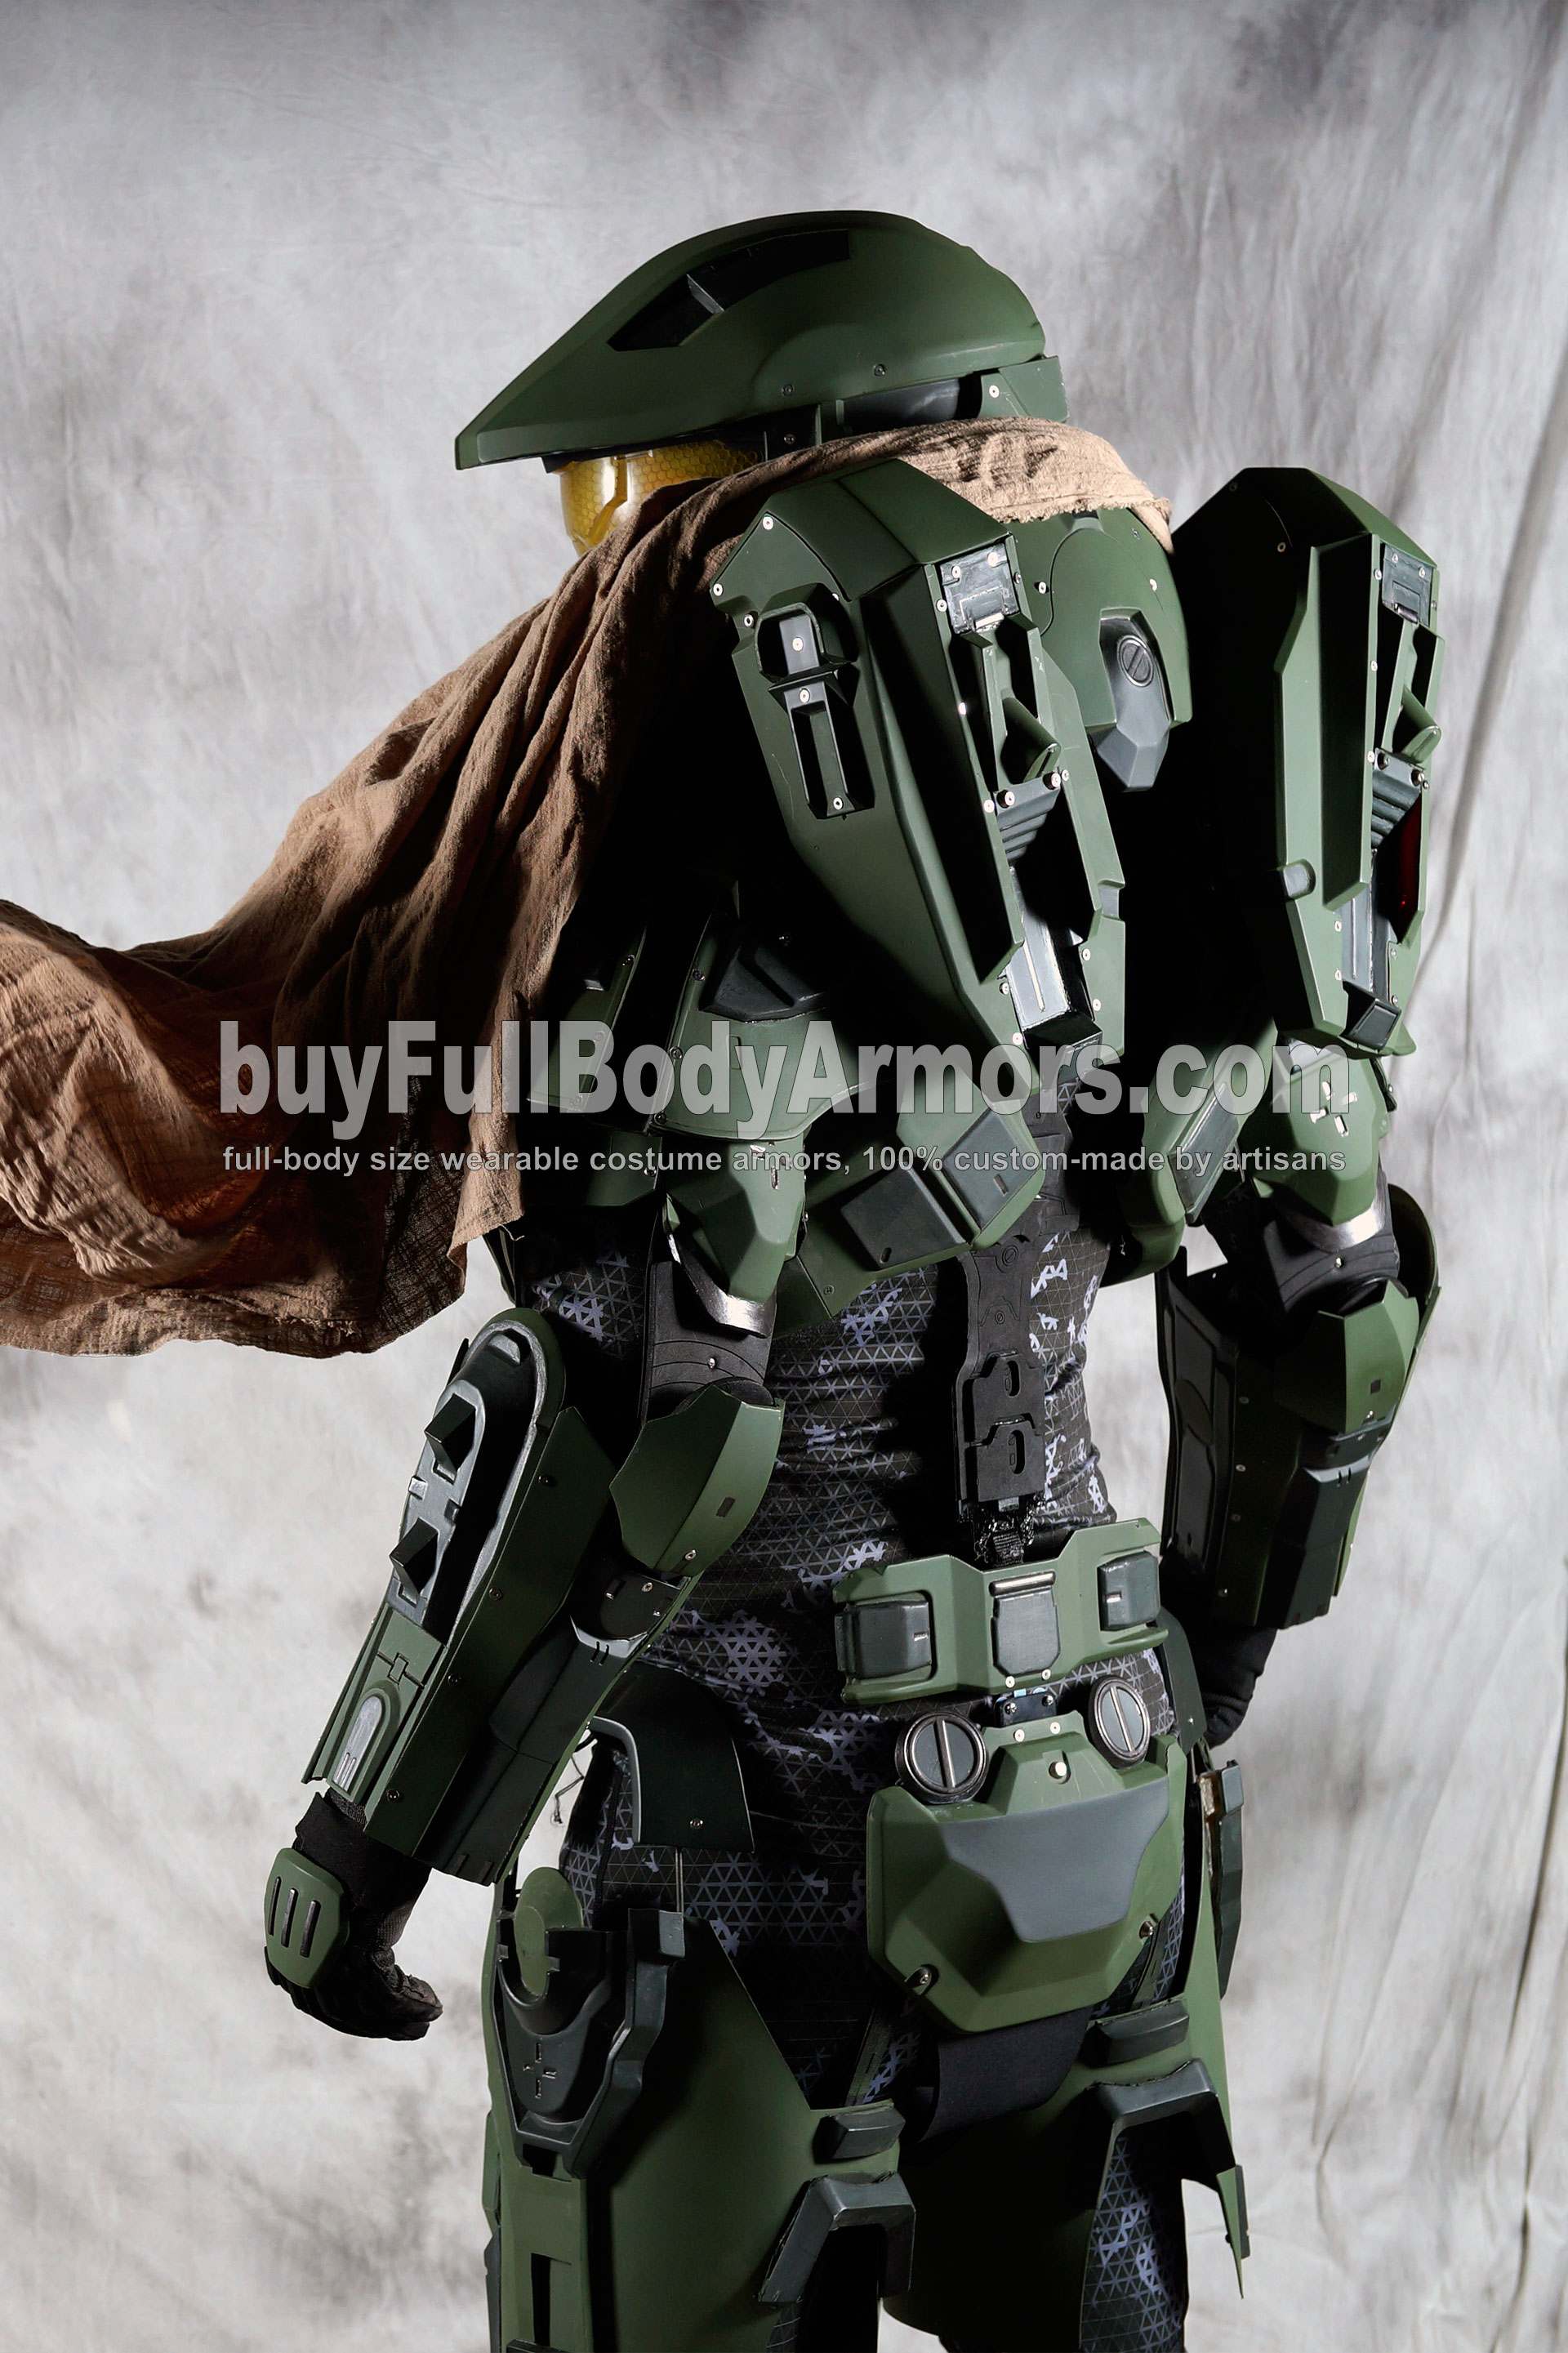 halo 5 master chief armor suit costume 5